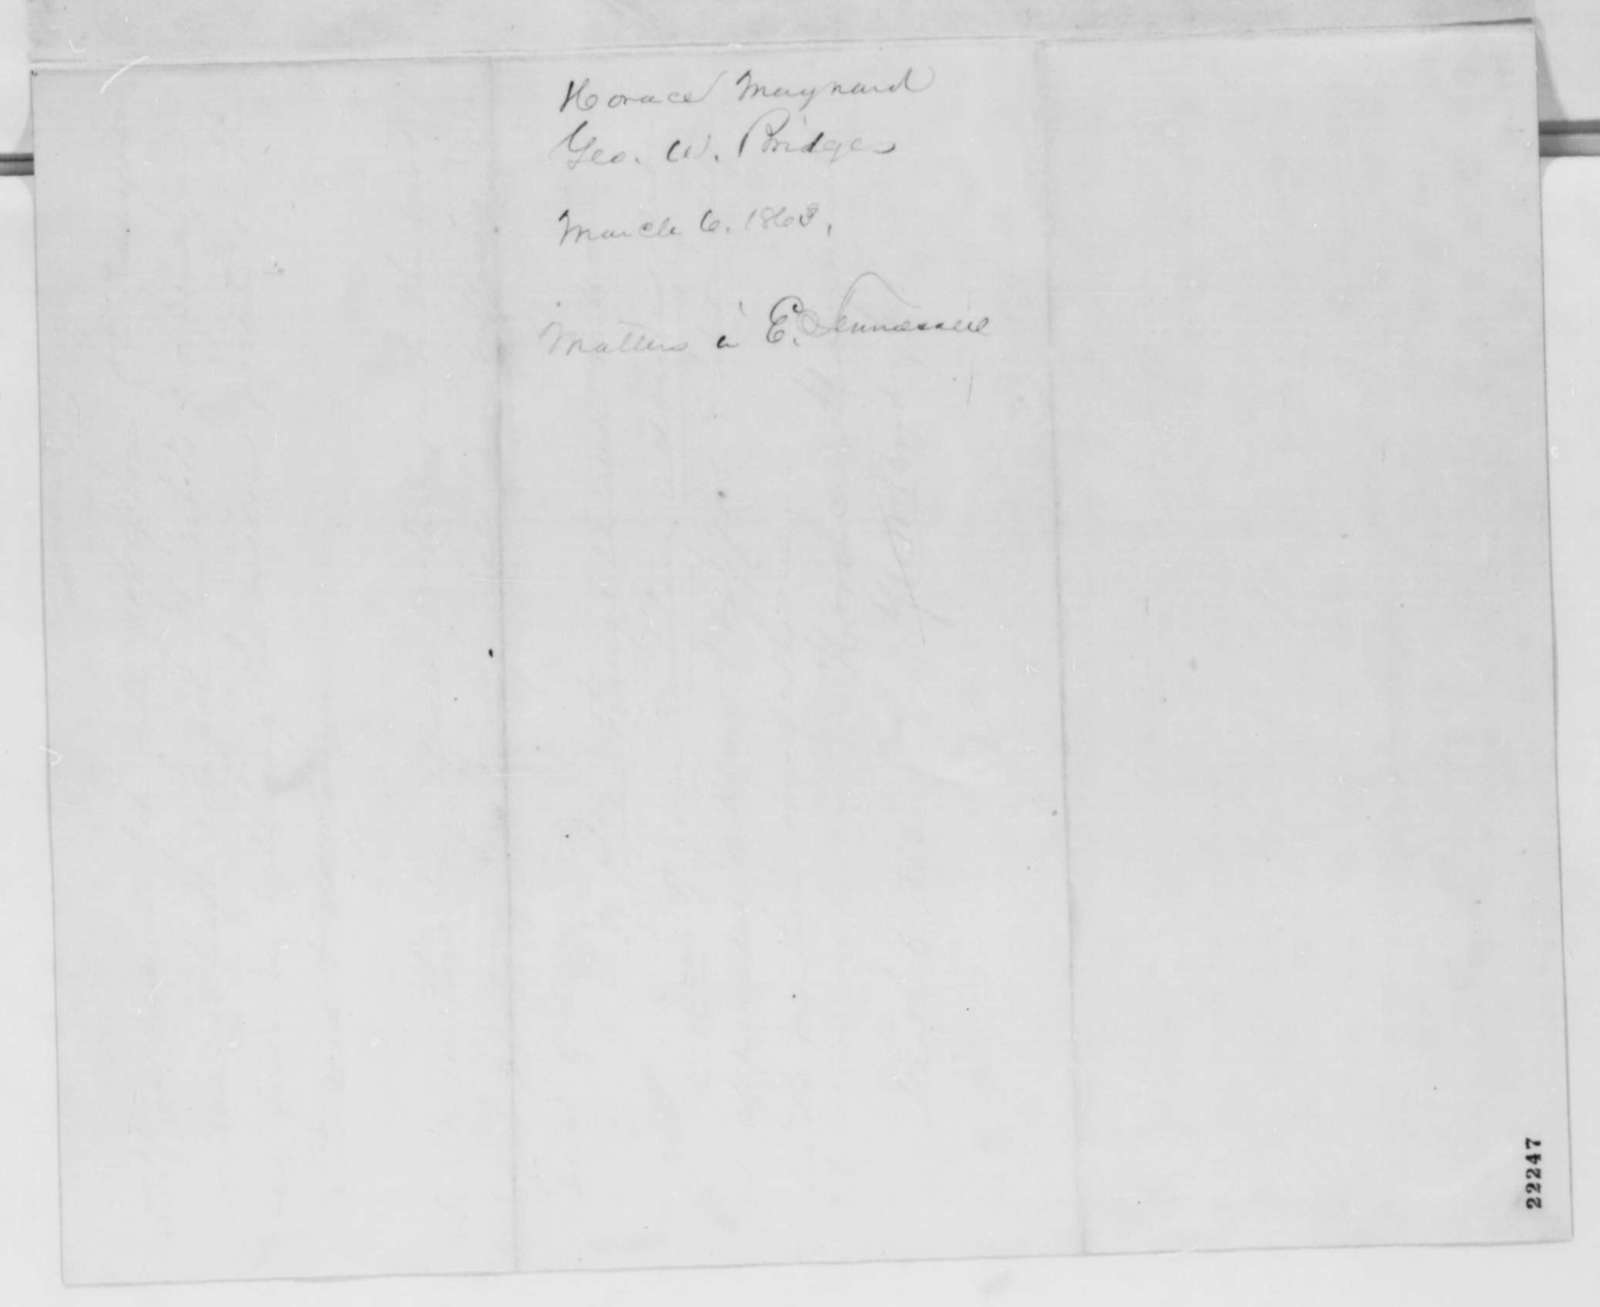 Horace Maynard and George W. Bridges to Abraham Lincoln, Friday, March 06, 1863  (Recommendations concerning East Tennessee)